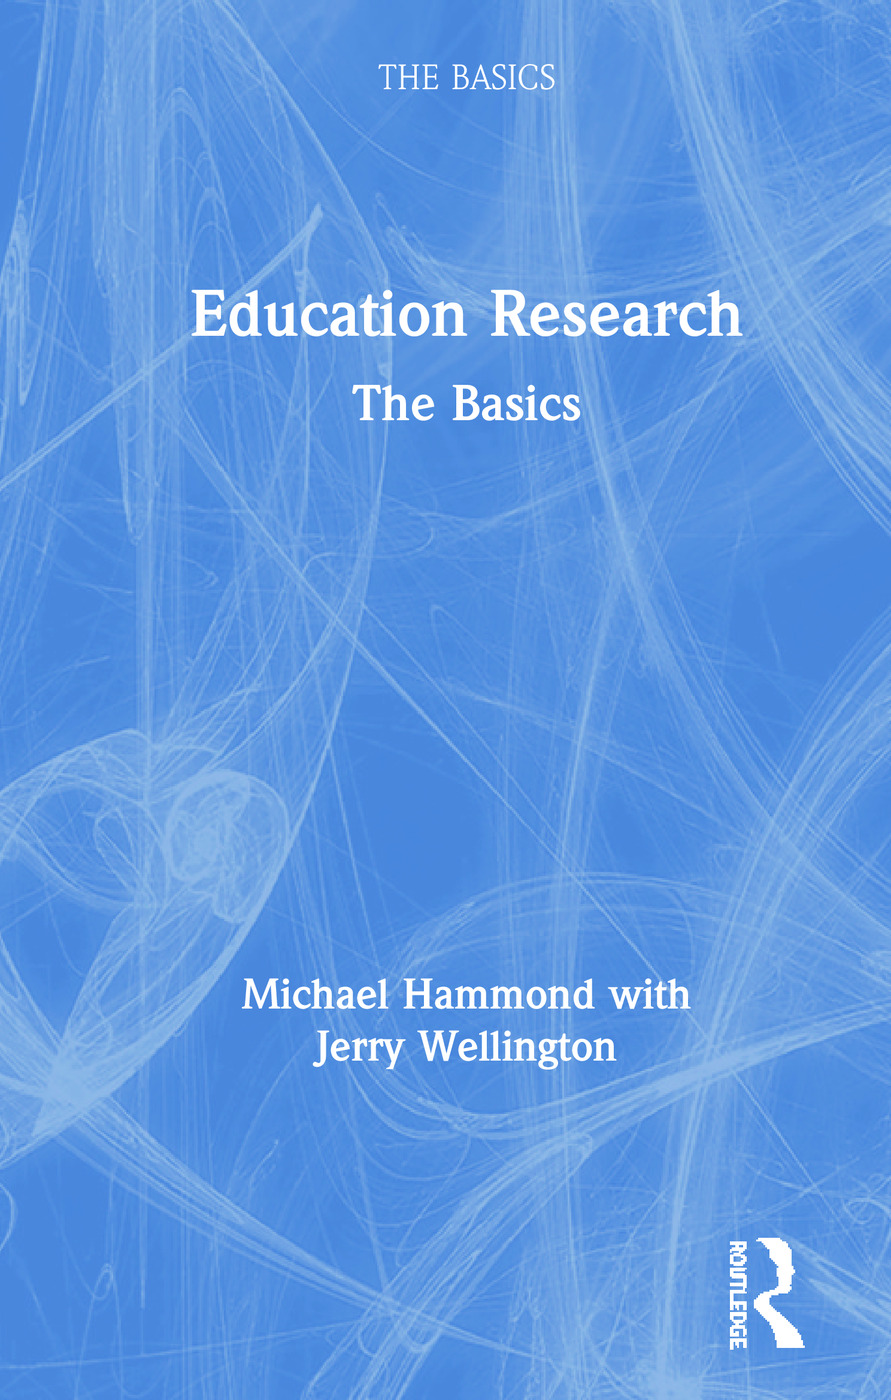 Education Research: The Basics book cover